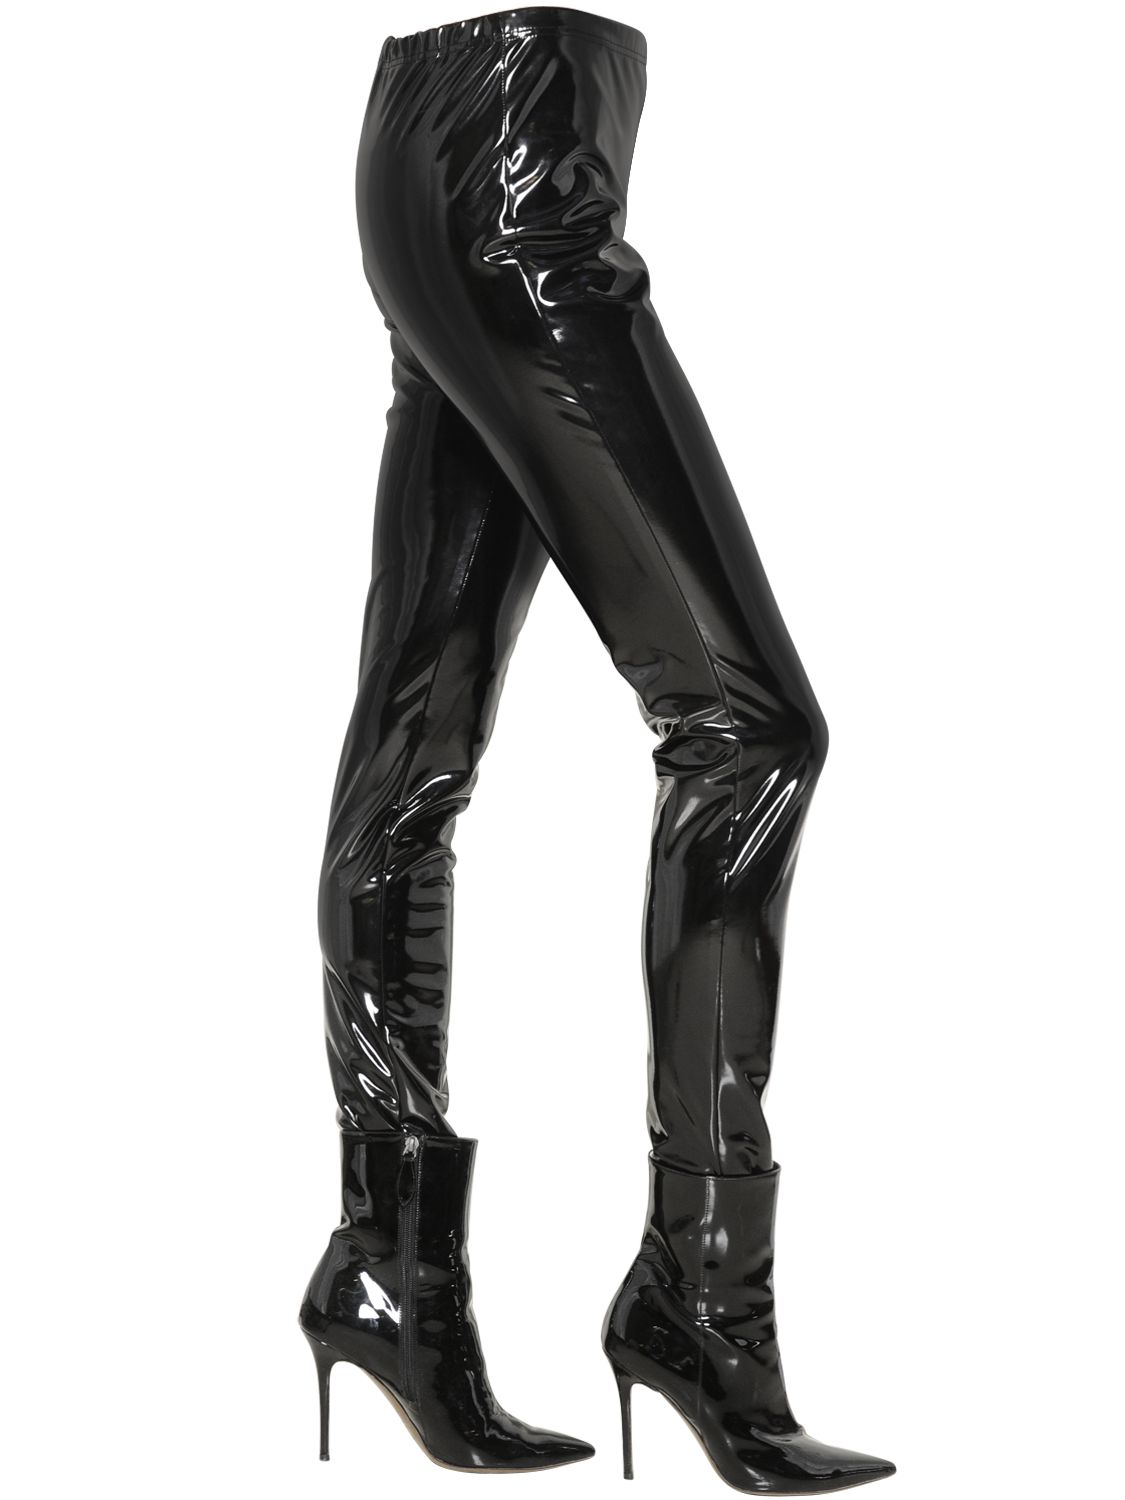 Wanda Nylon Stretch Vinyl Leggings In Black Lyst